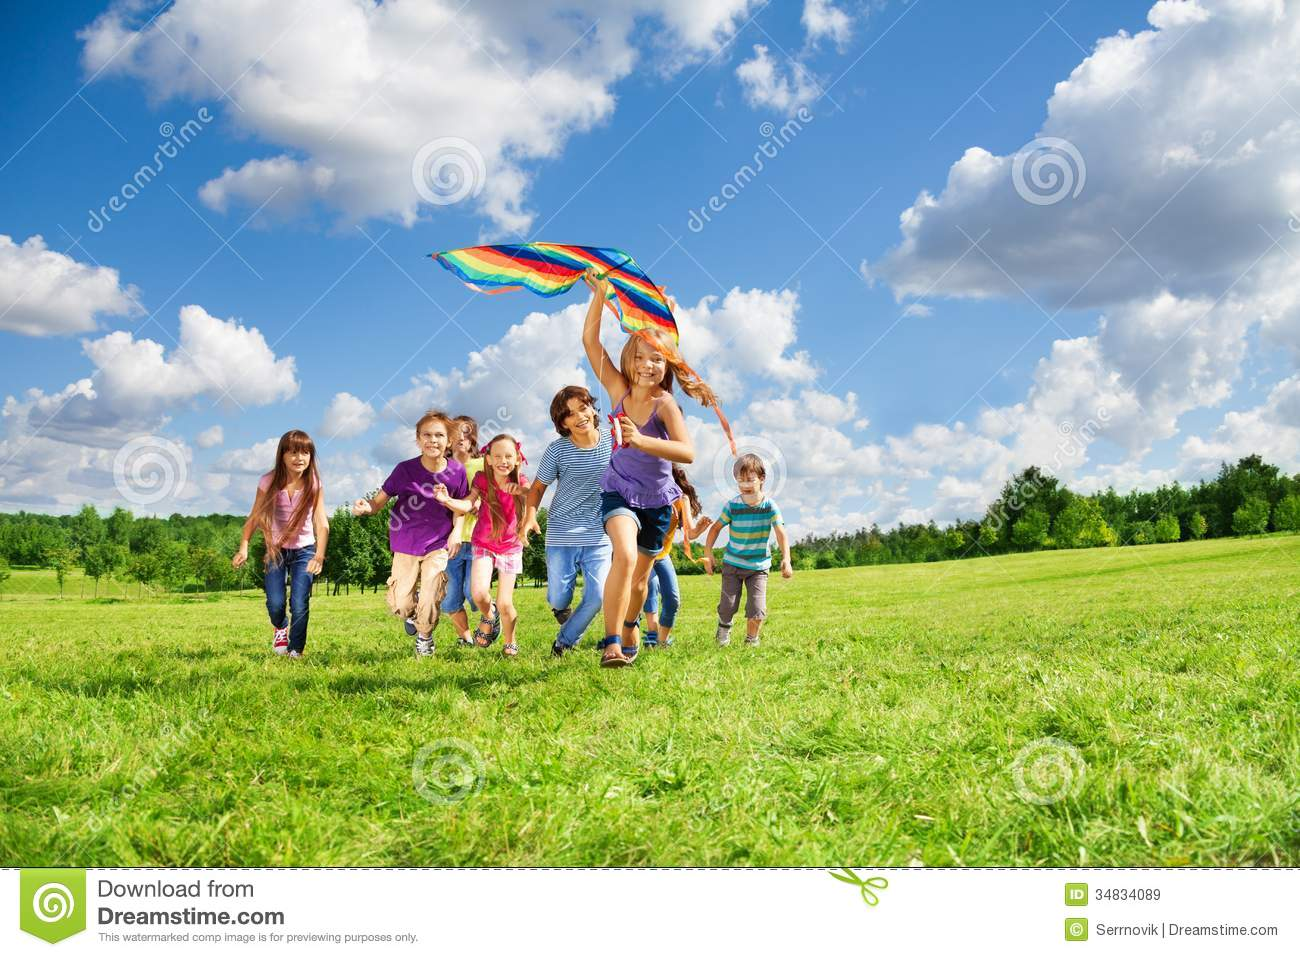 Many Kids Have Fun With Kite Stock Image - Image: 34834089